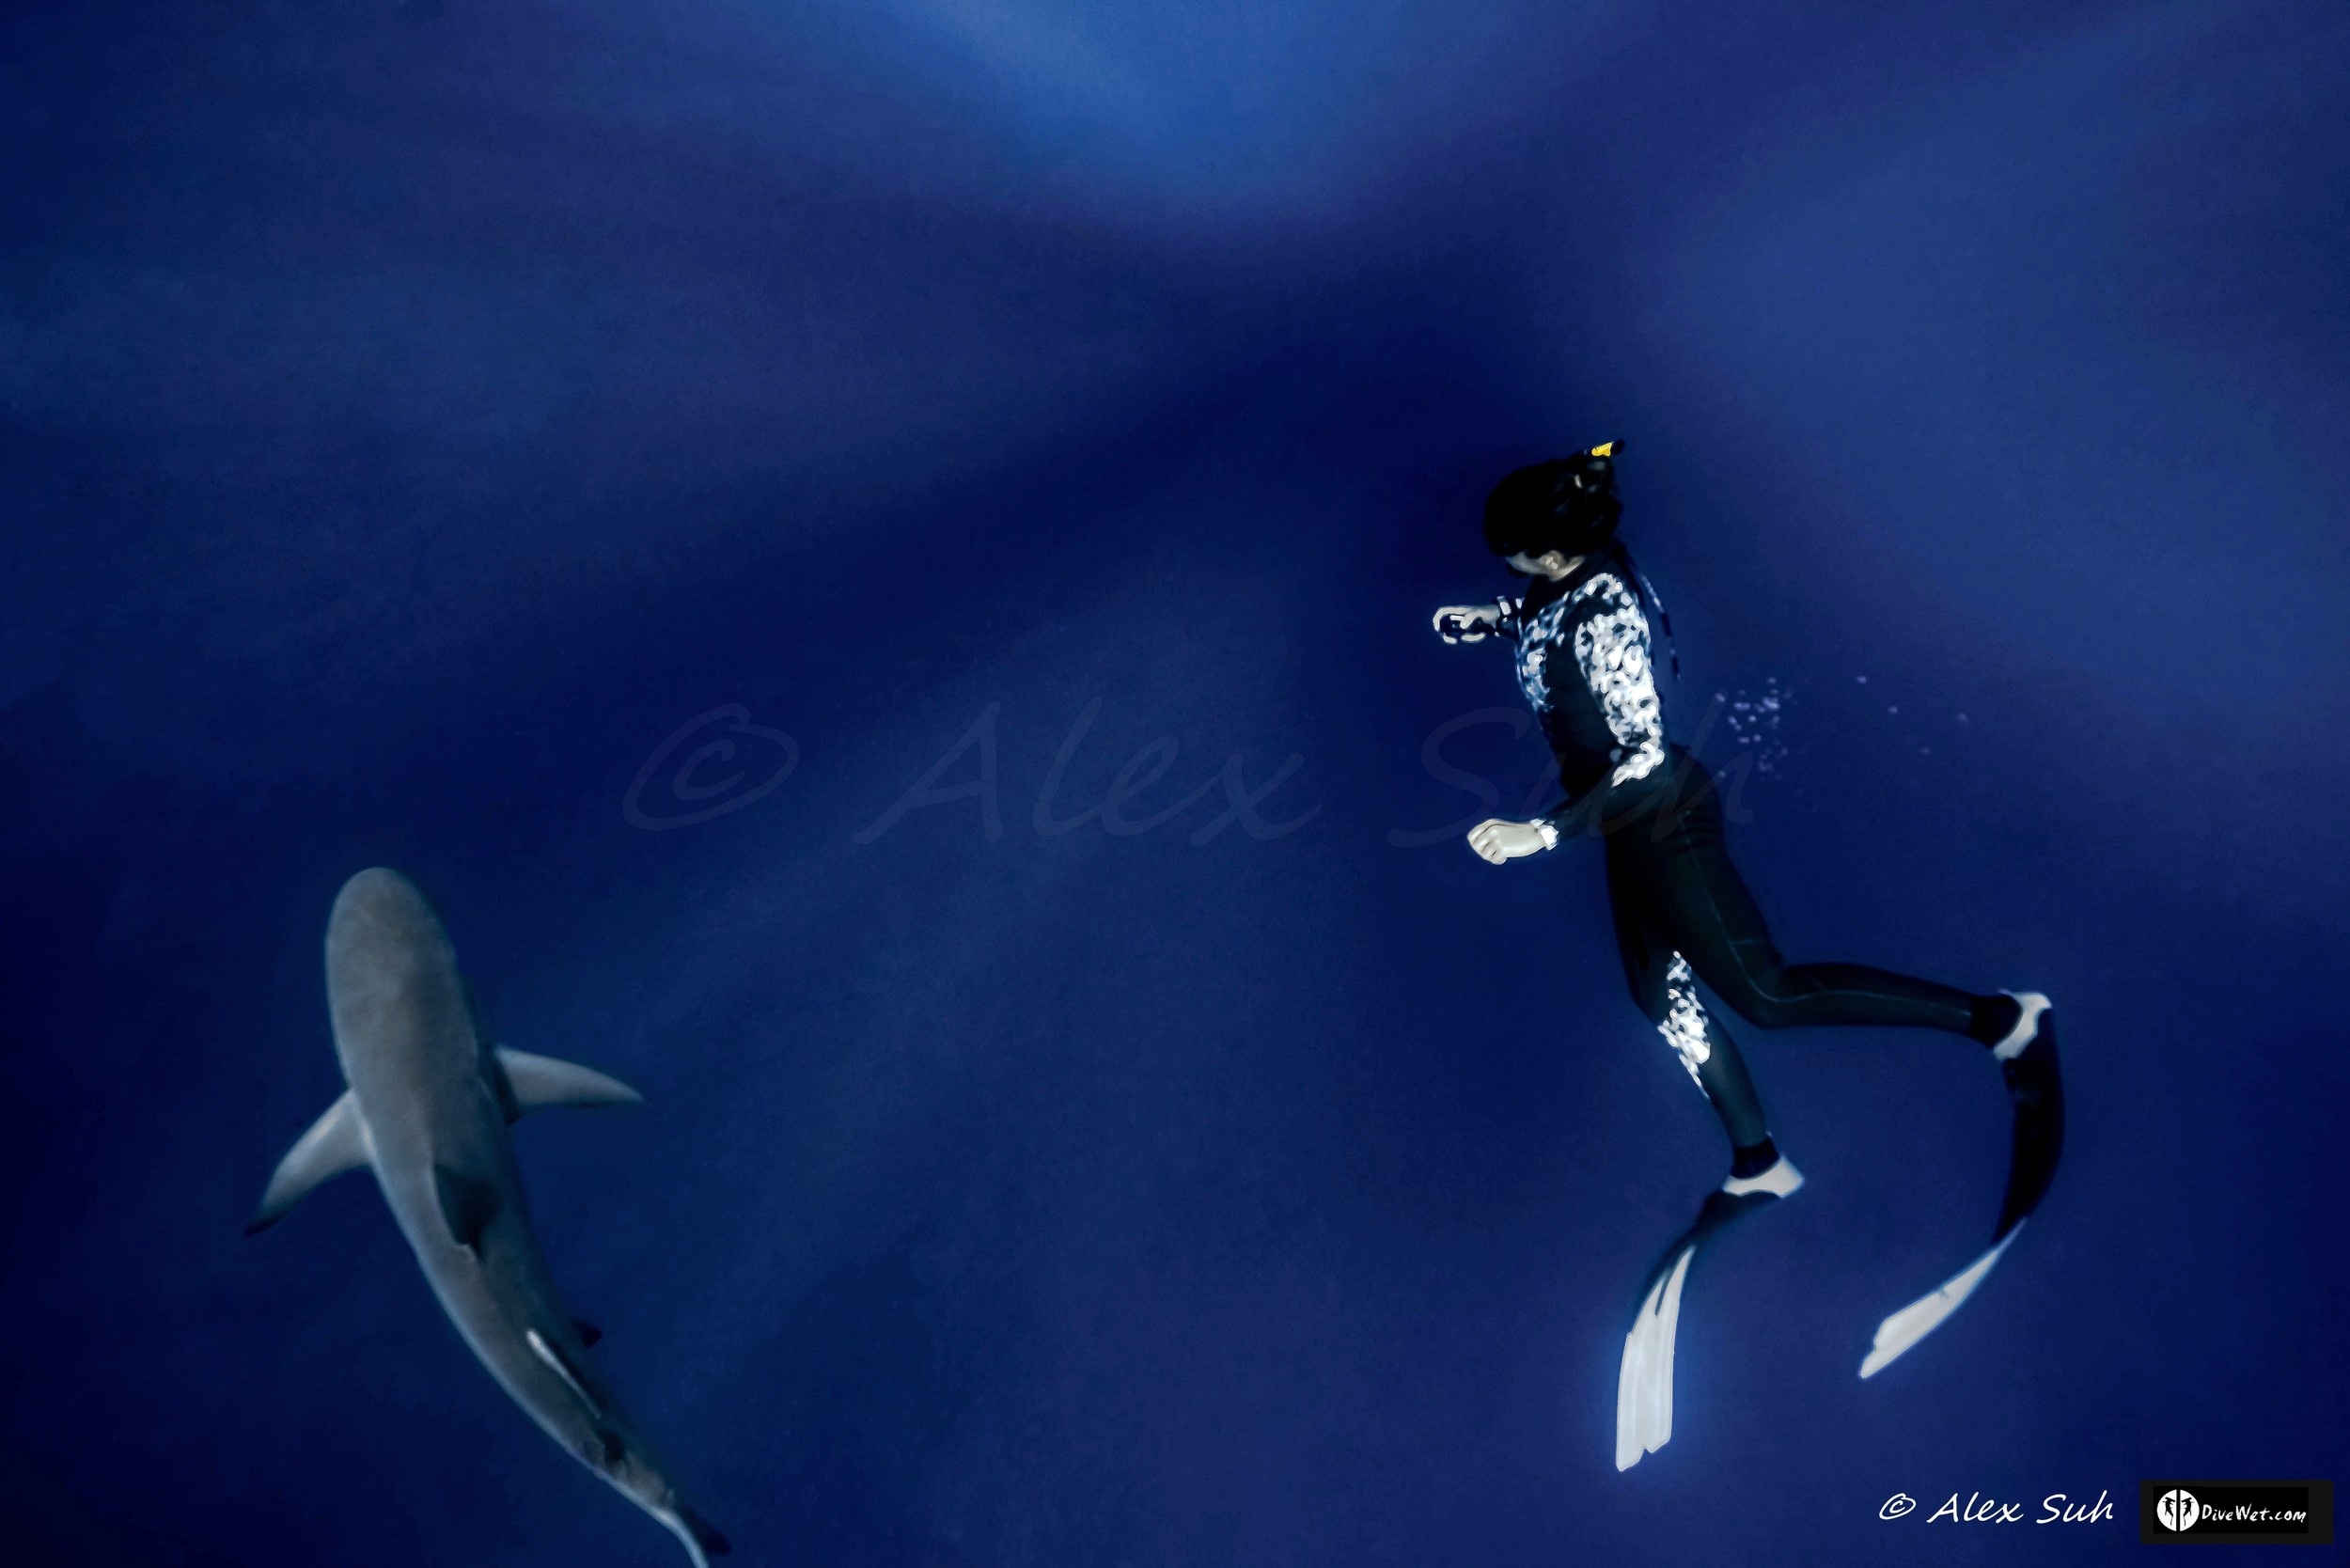 Greek Freediver Katerina Dancing with Caribbean Reef Shark (Carcharhinus perezii)